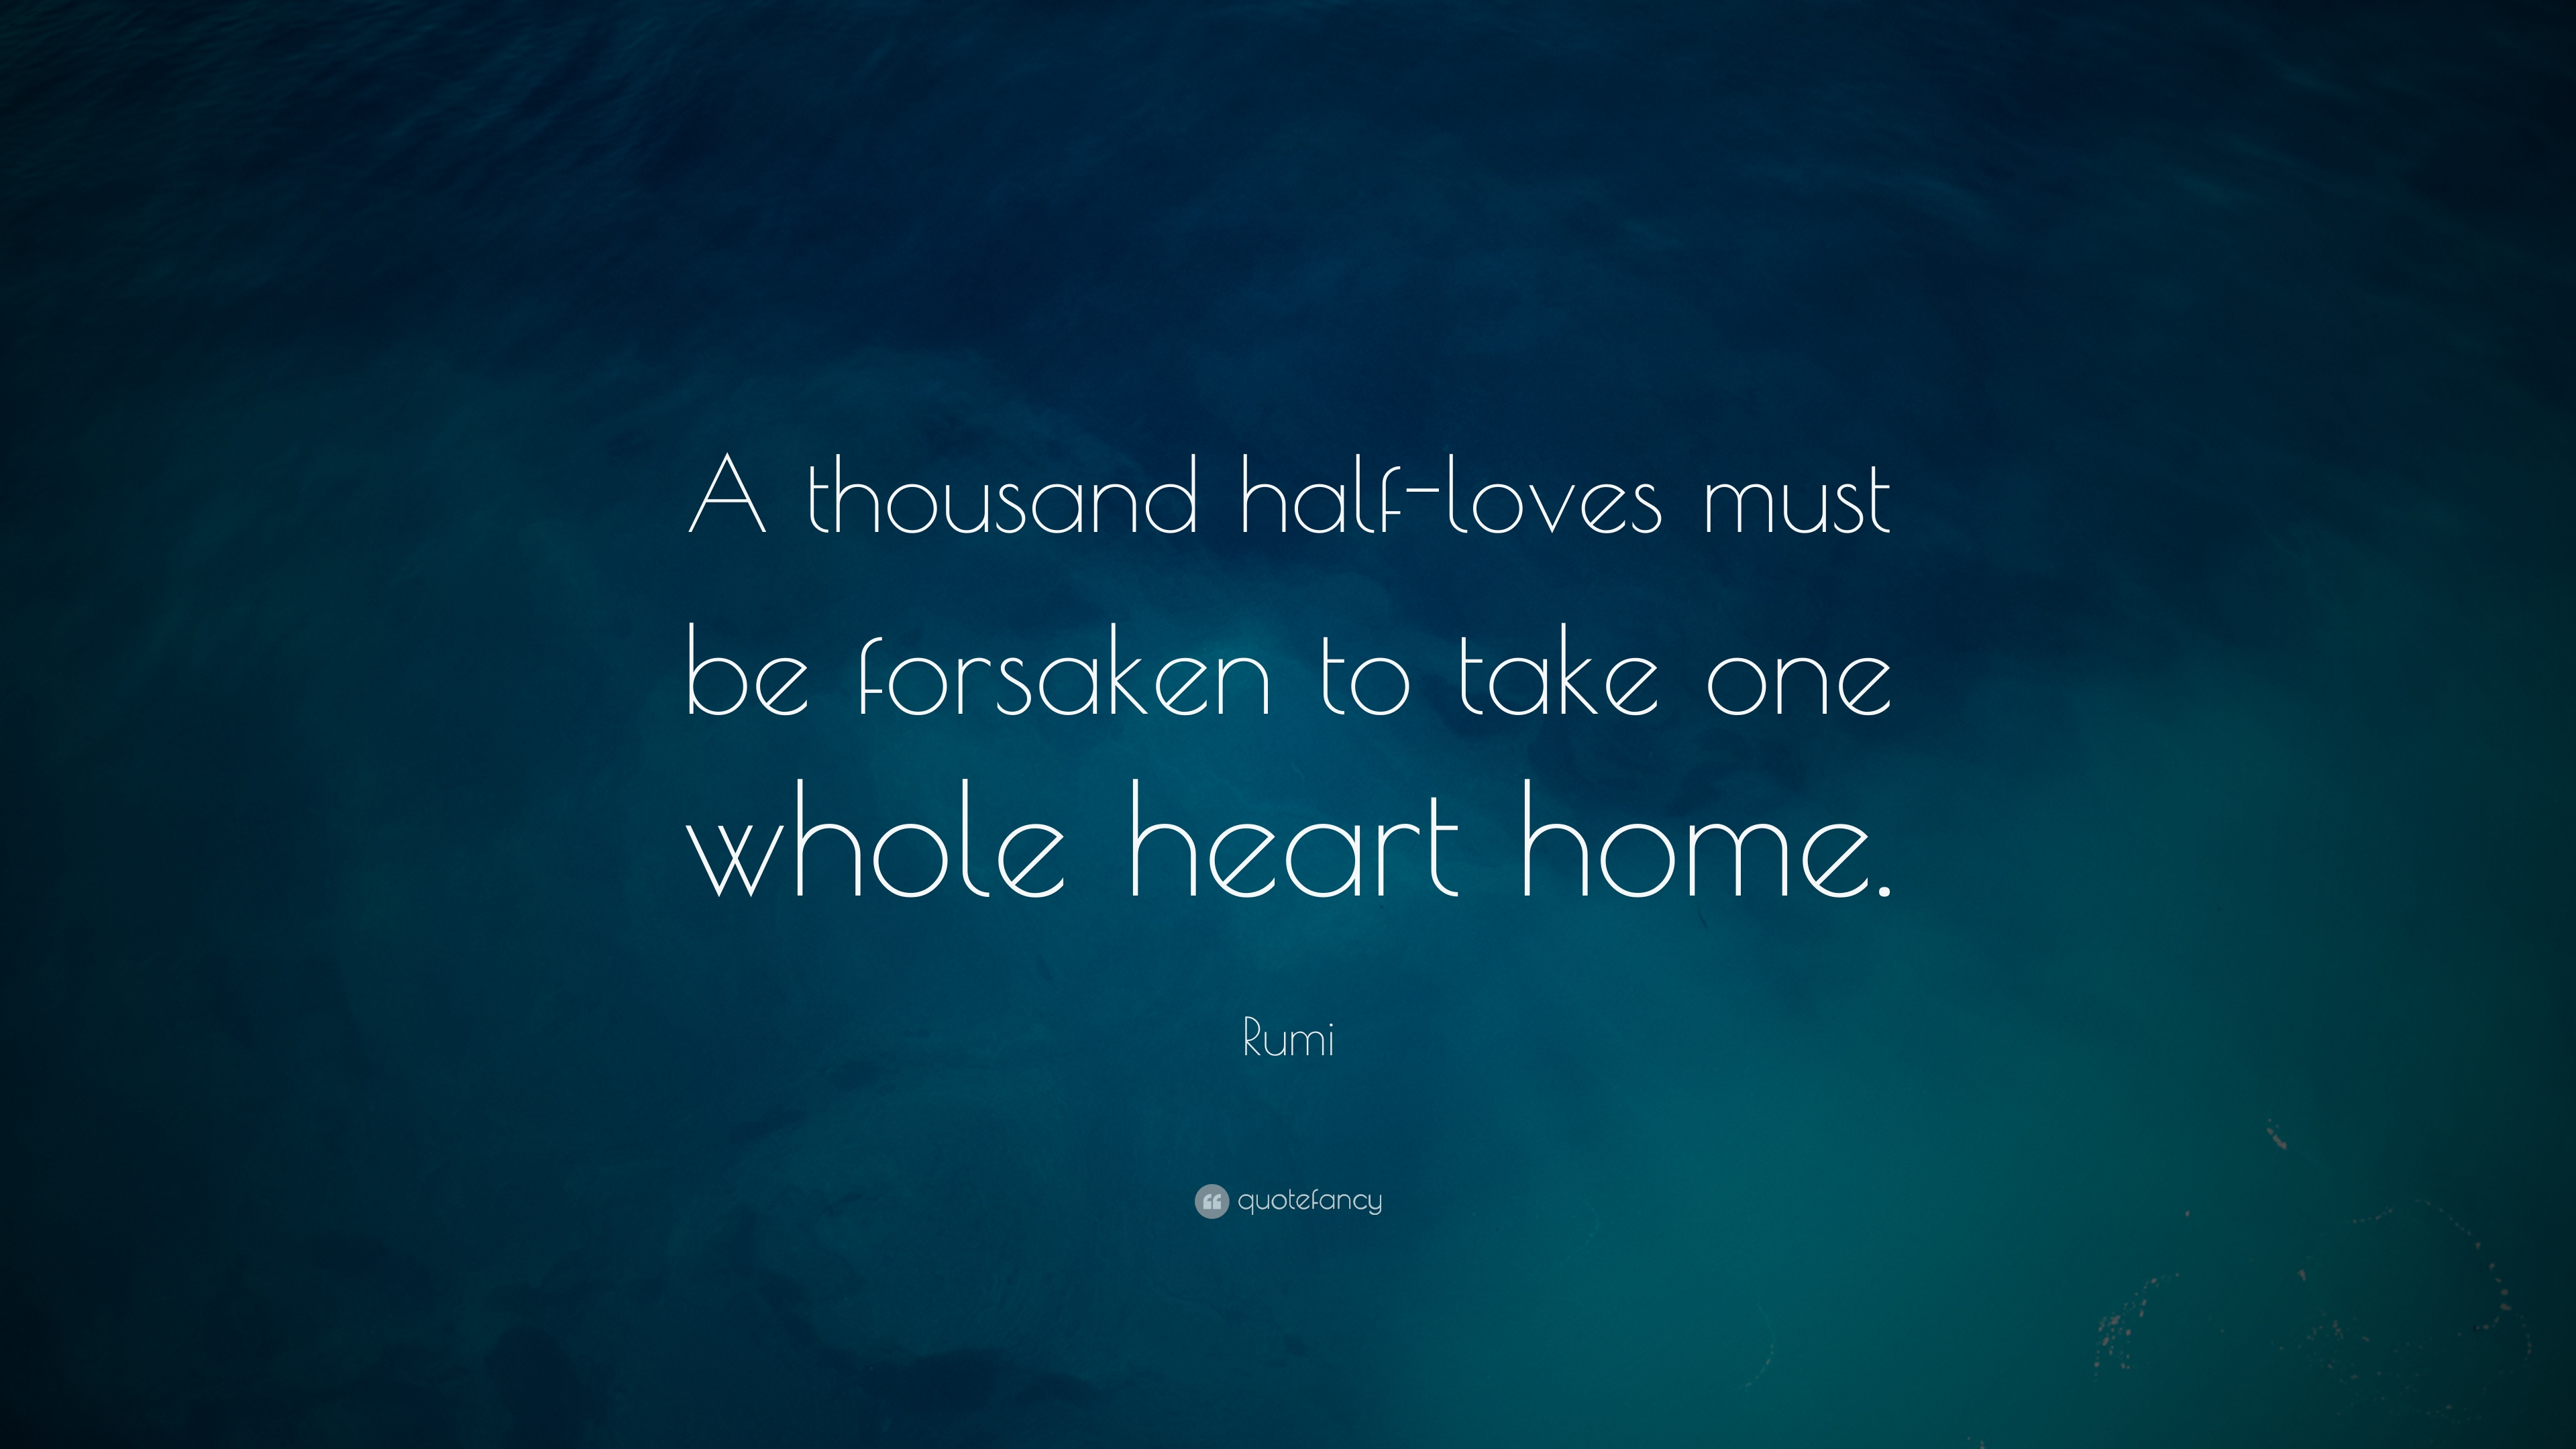 Dance With God Quotes Laptop Wallpaper Rumi Quote A Thousand Half Loves Must Be Forsaken To